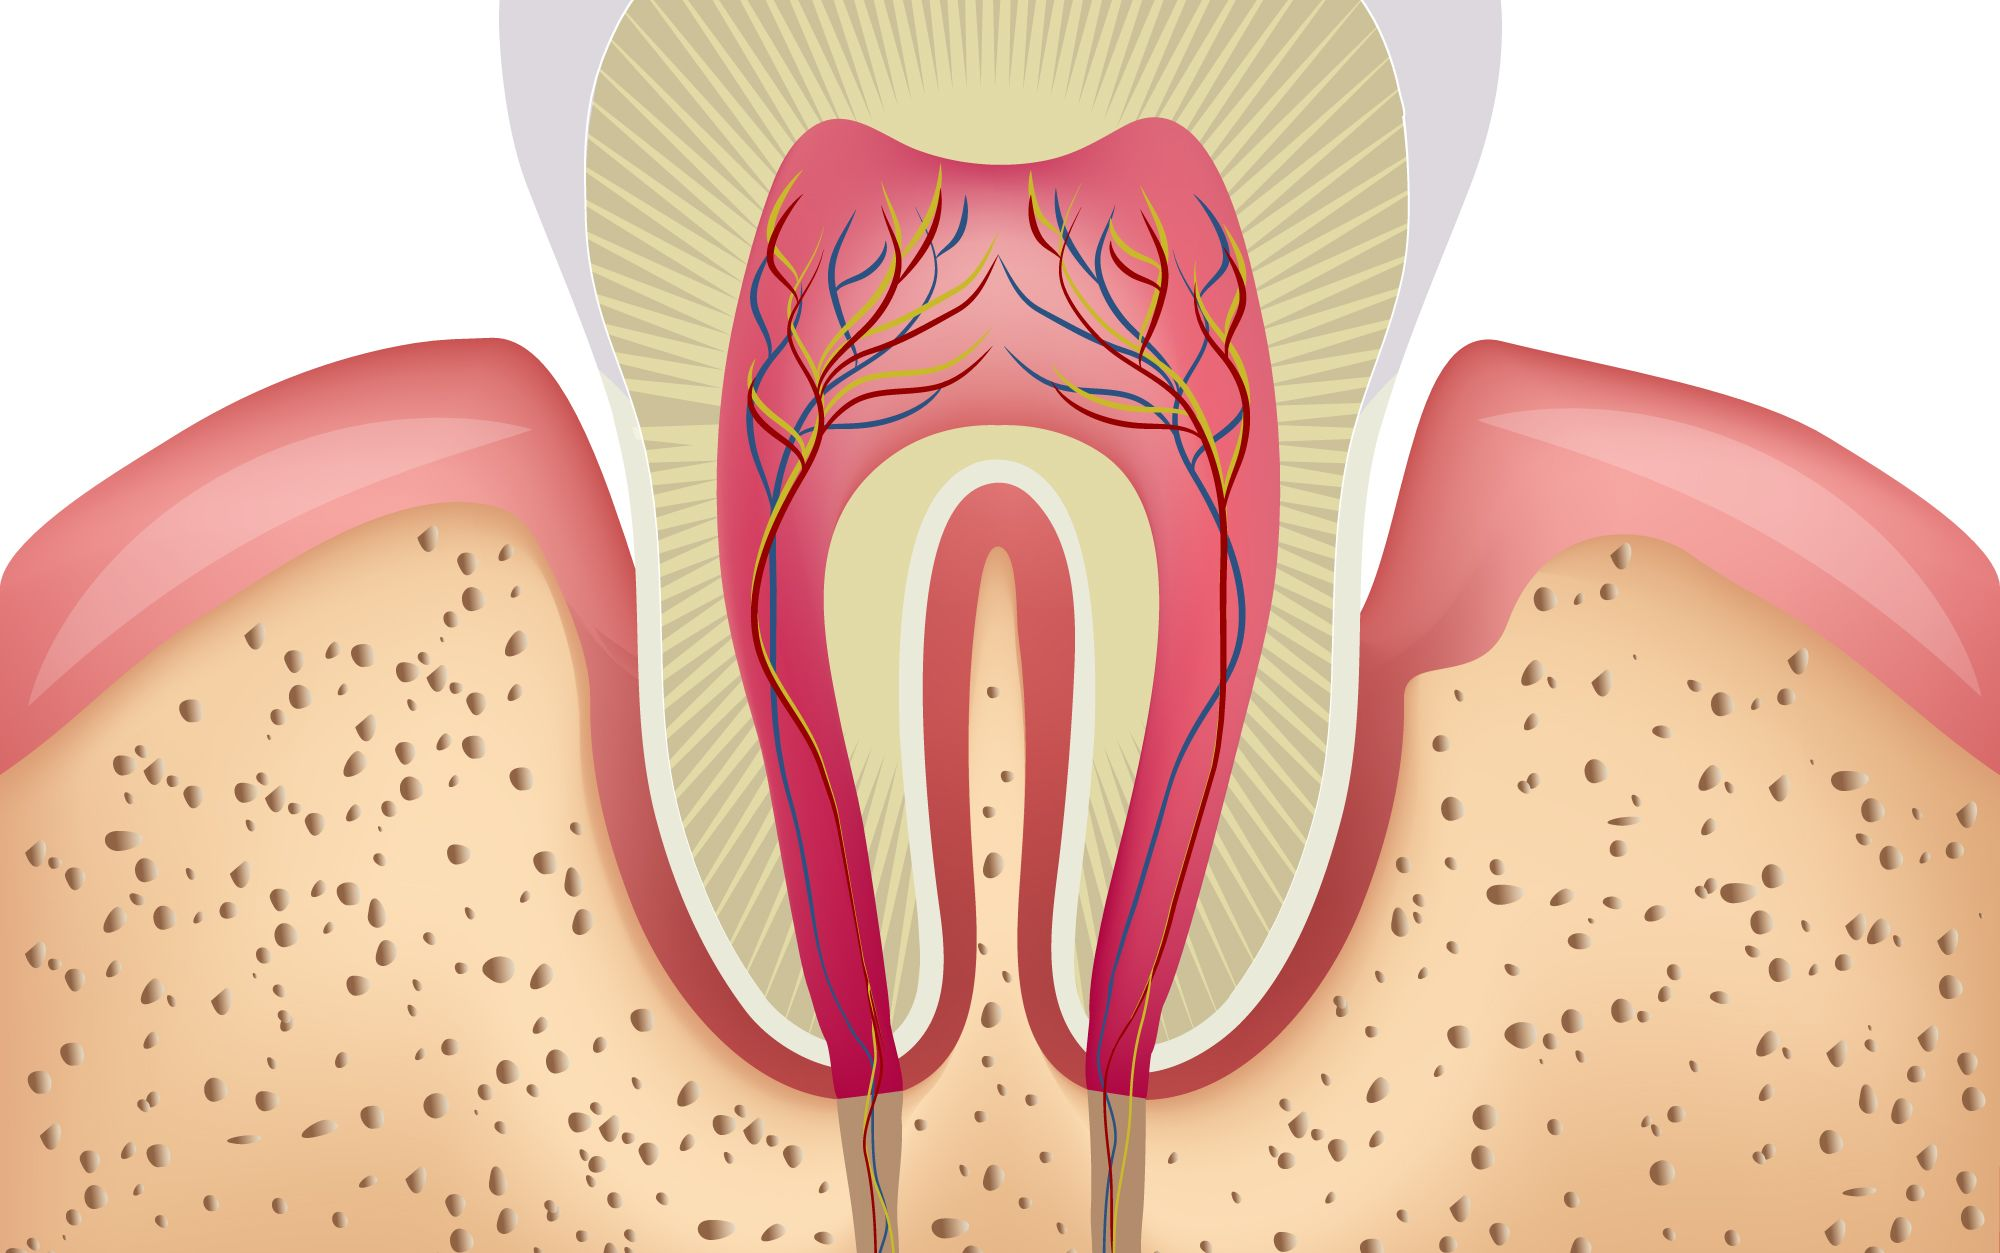 An illustration of the inner structures of a tooth and gums